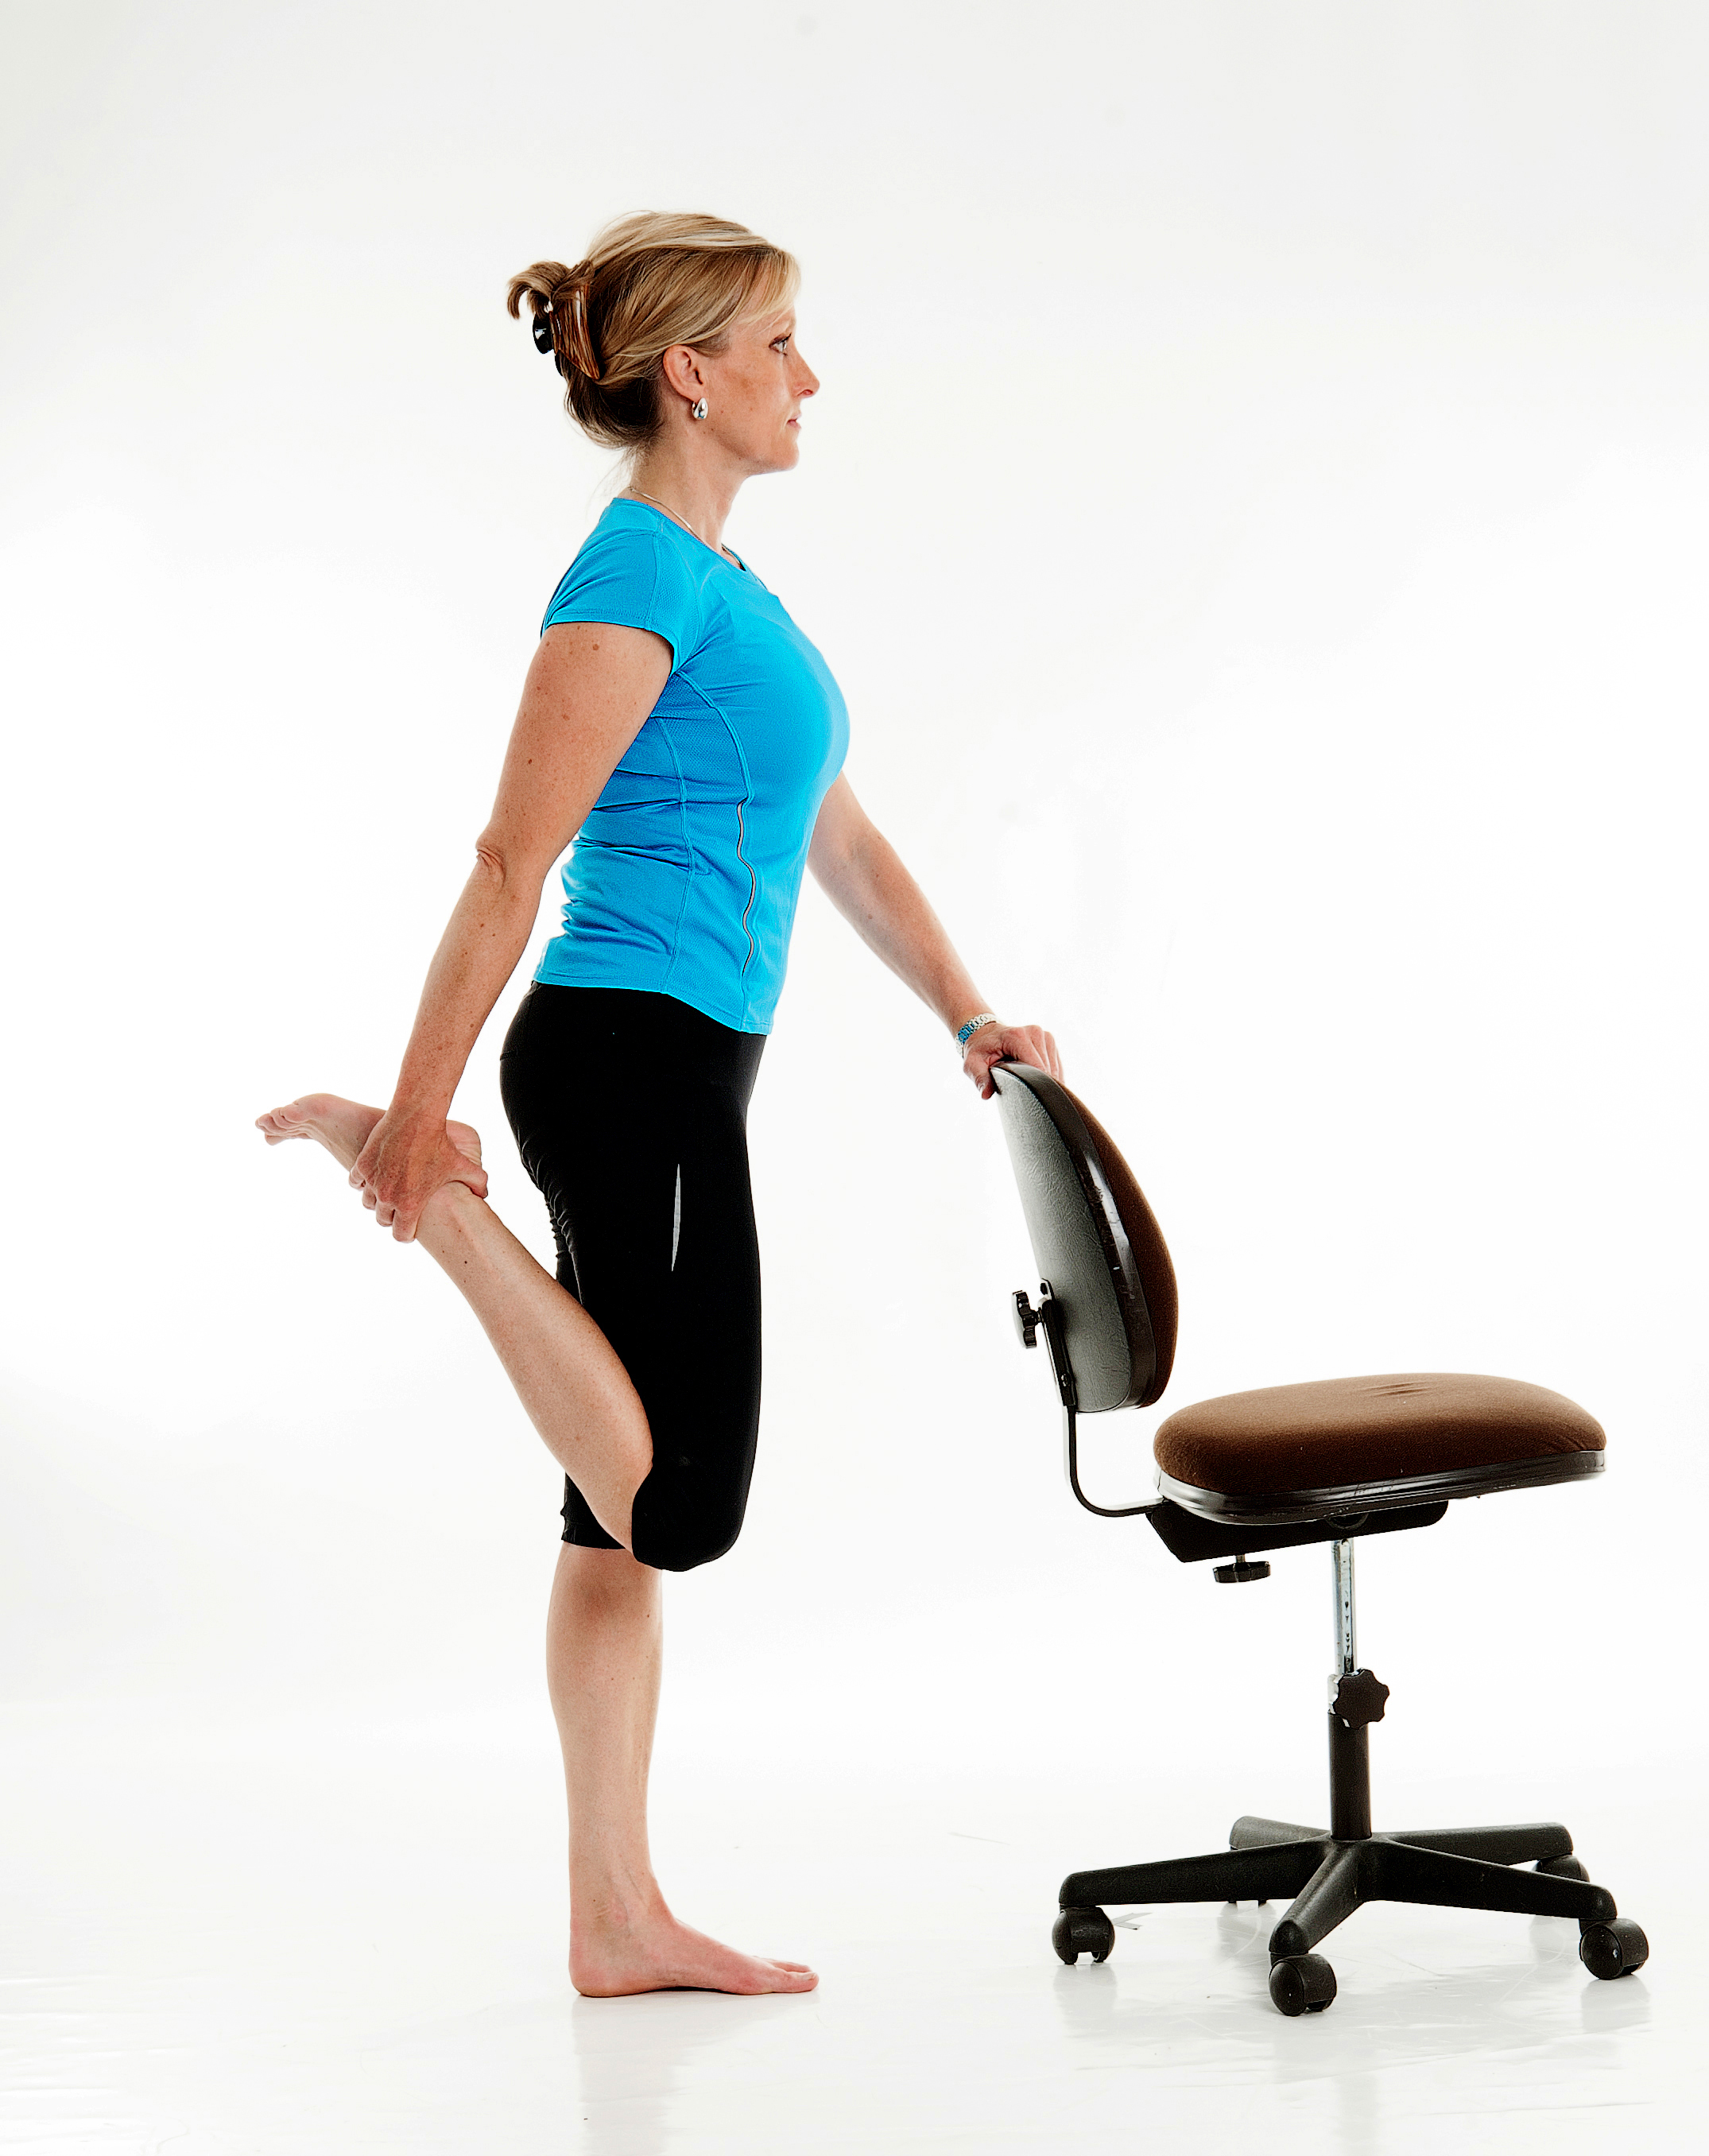 Stretching Chair Exercises At The Office Healthwise Leiza Alpass Msc Dc